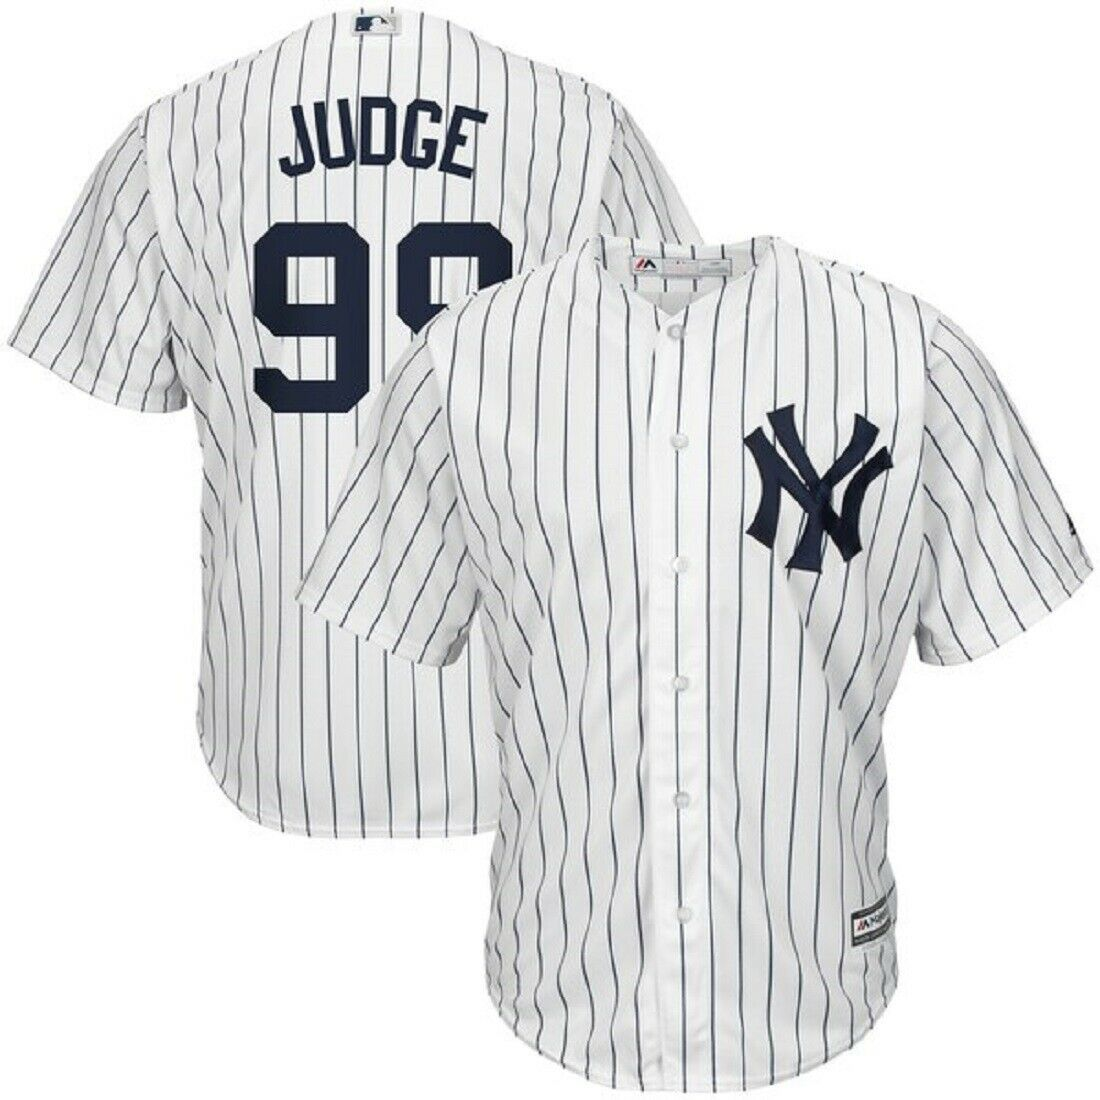 Aaron Judge New York Yankees Majestic Home Pinstripe Cool Base Jersey Adult XL